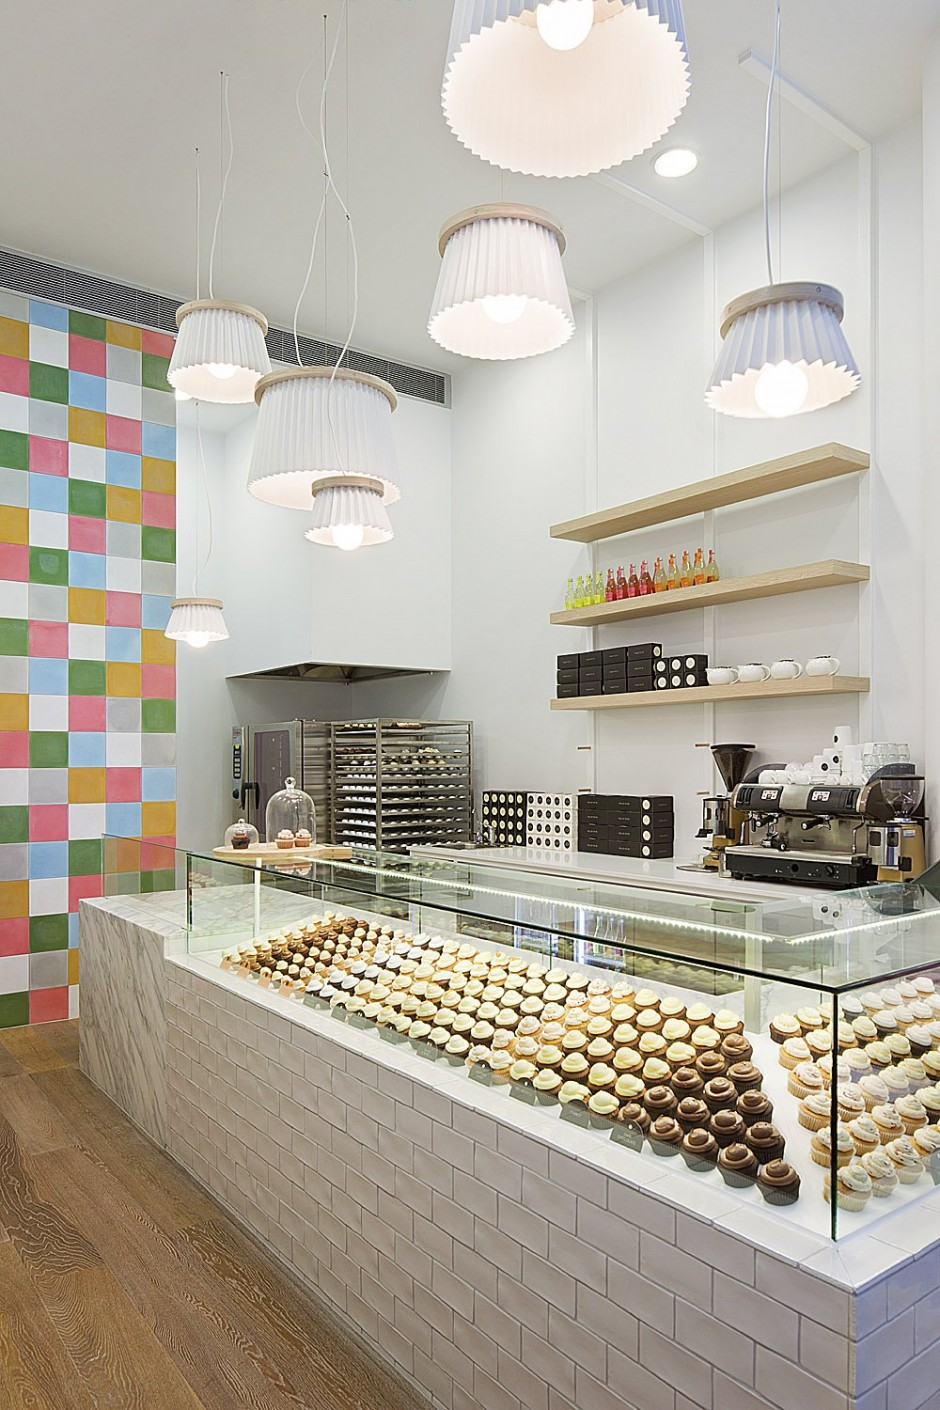 Best Restaurant Interior Design Ideas Cupcake Shop Melbourne